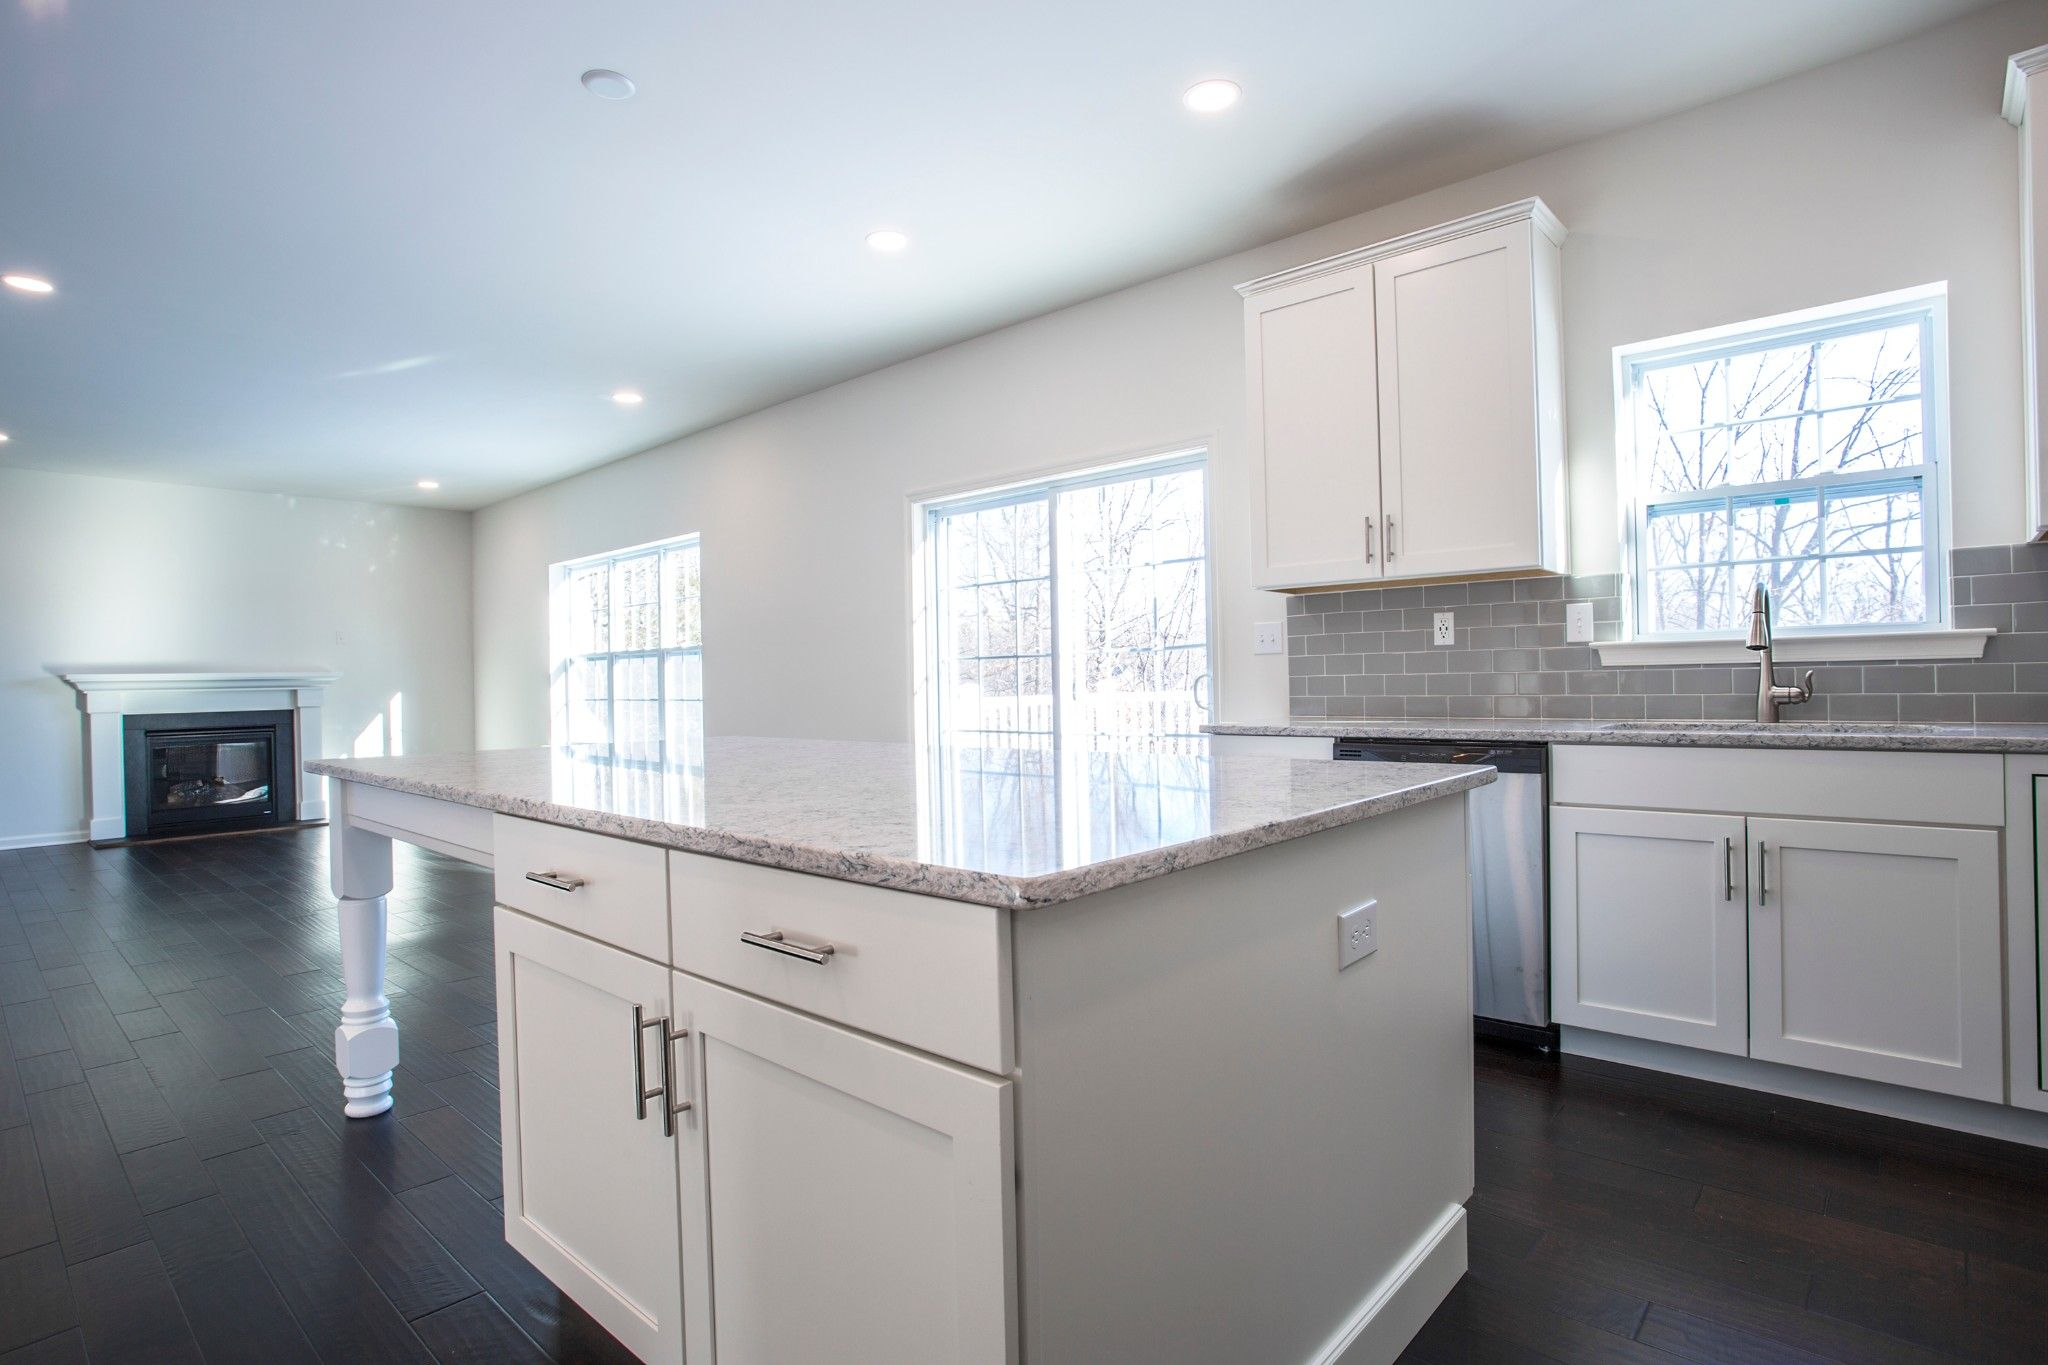 Kitchen featured in the Madison Country at Sand Springs By Tuskes Homes